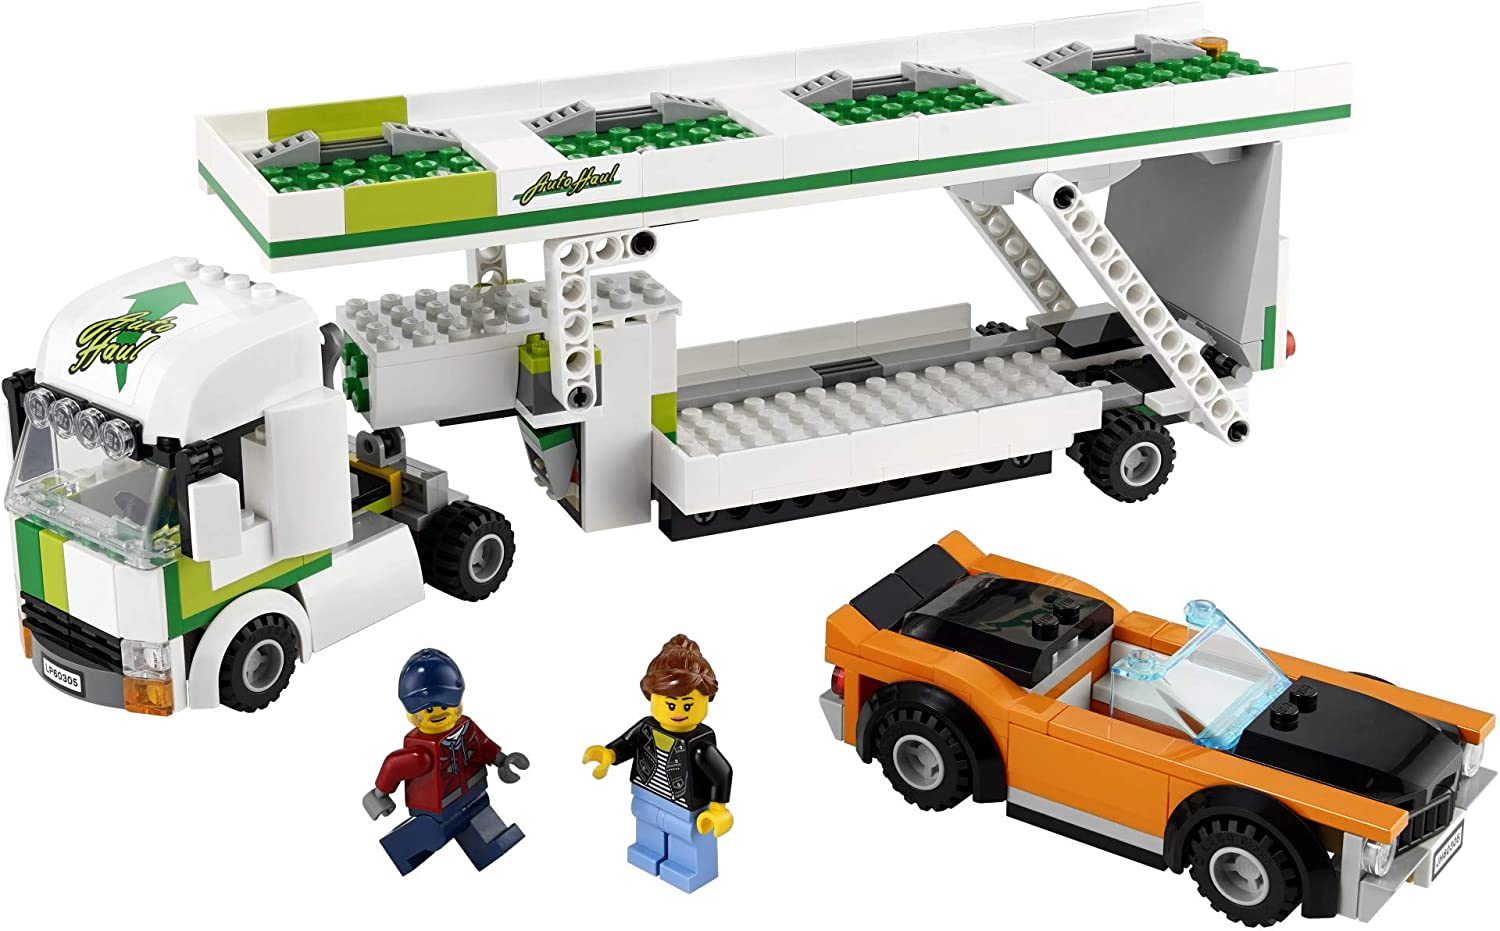 342 Pieces LEGO City Car Transporter 60305 Building Kit; Toy Playset for Kids New 2021